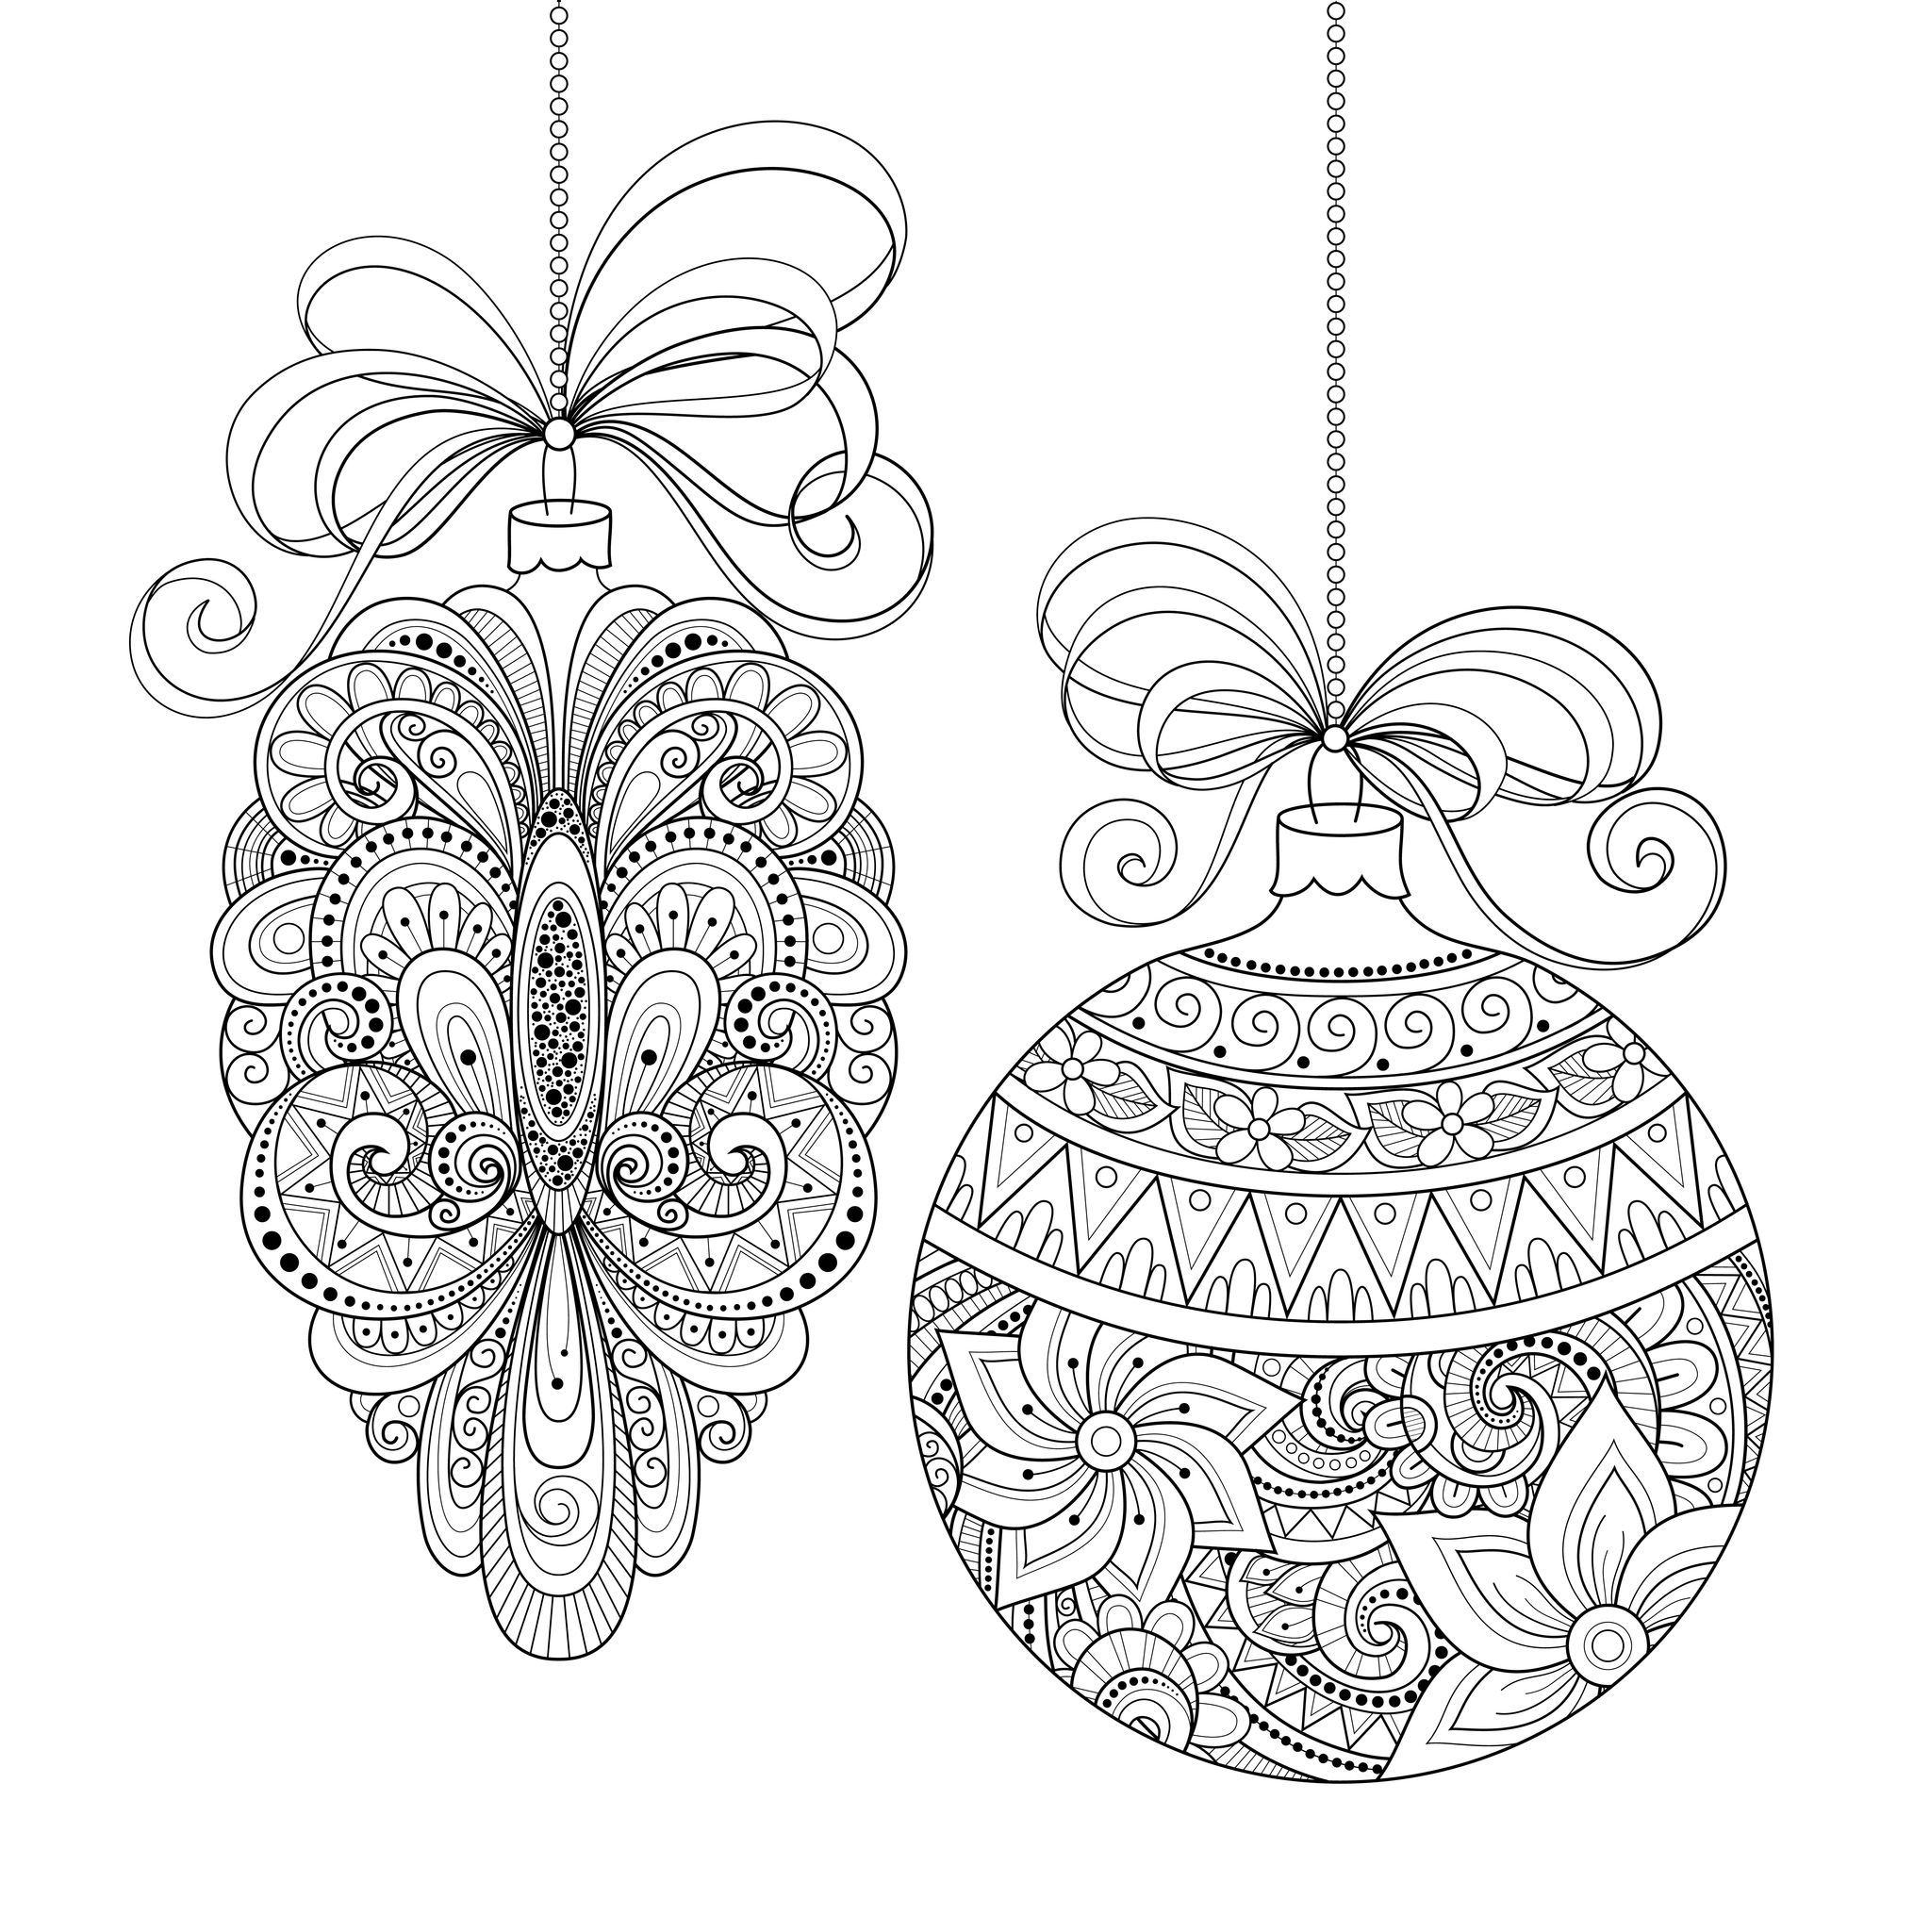 adult coloring pages printable christmas - photo#21